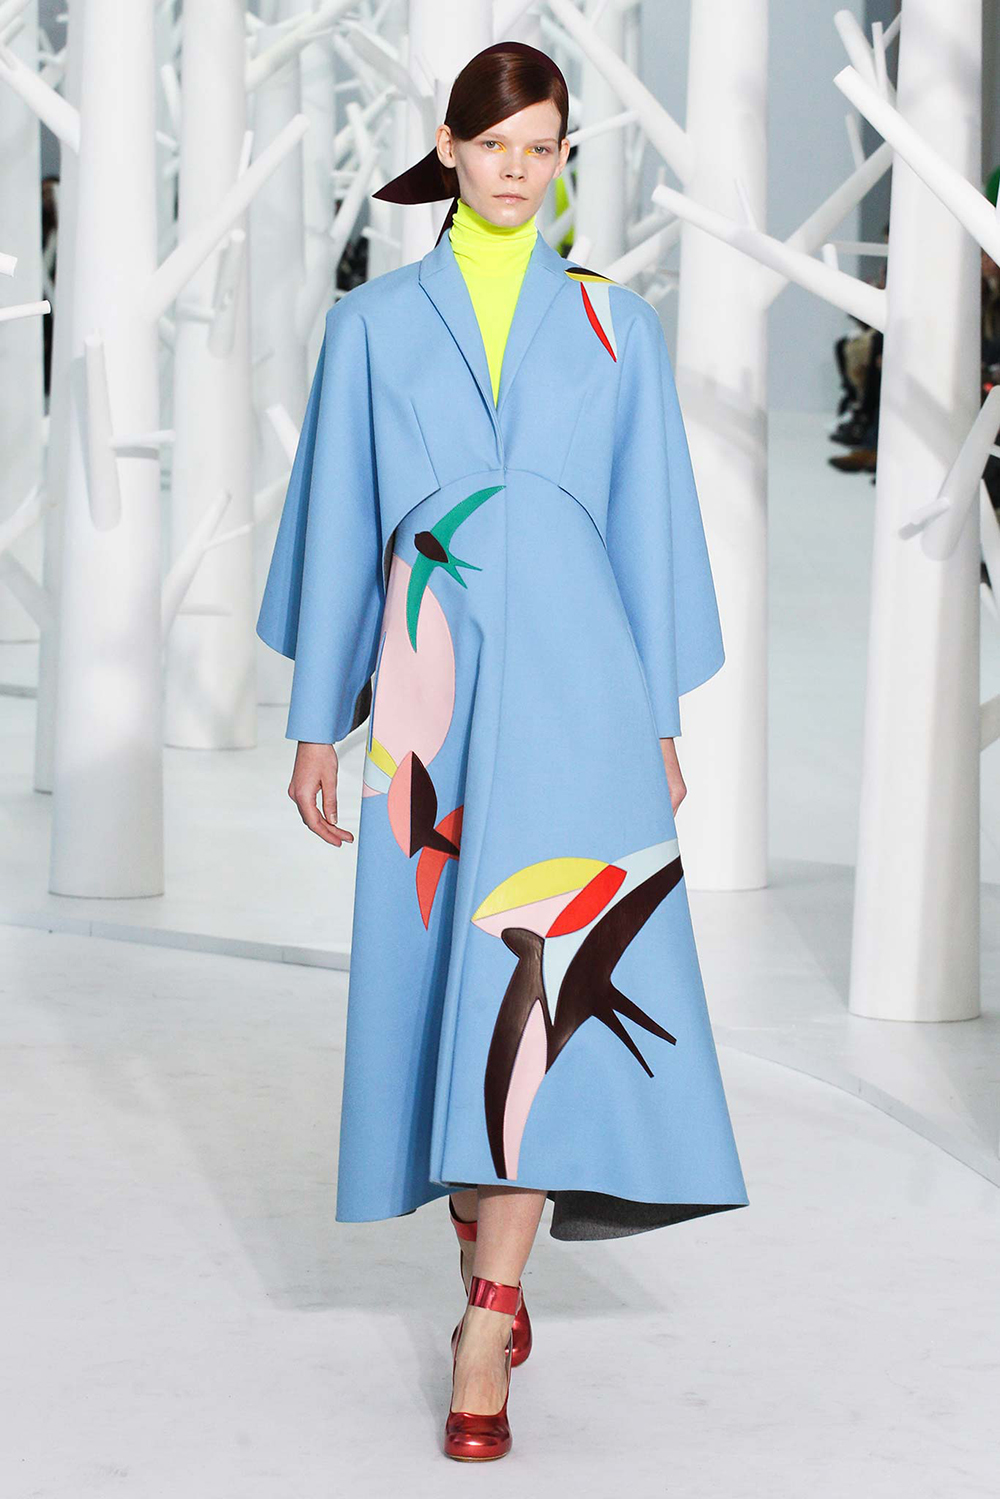 Delpozo FW 2015 collection of colorful skirts, print jackets and radical hair bows